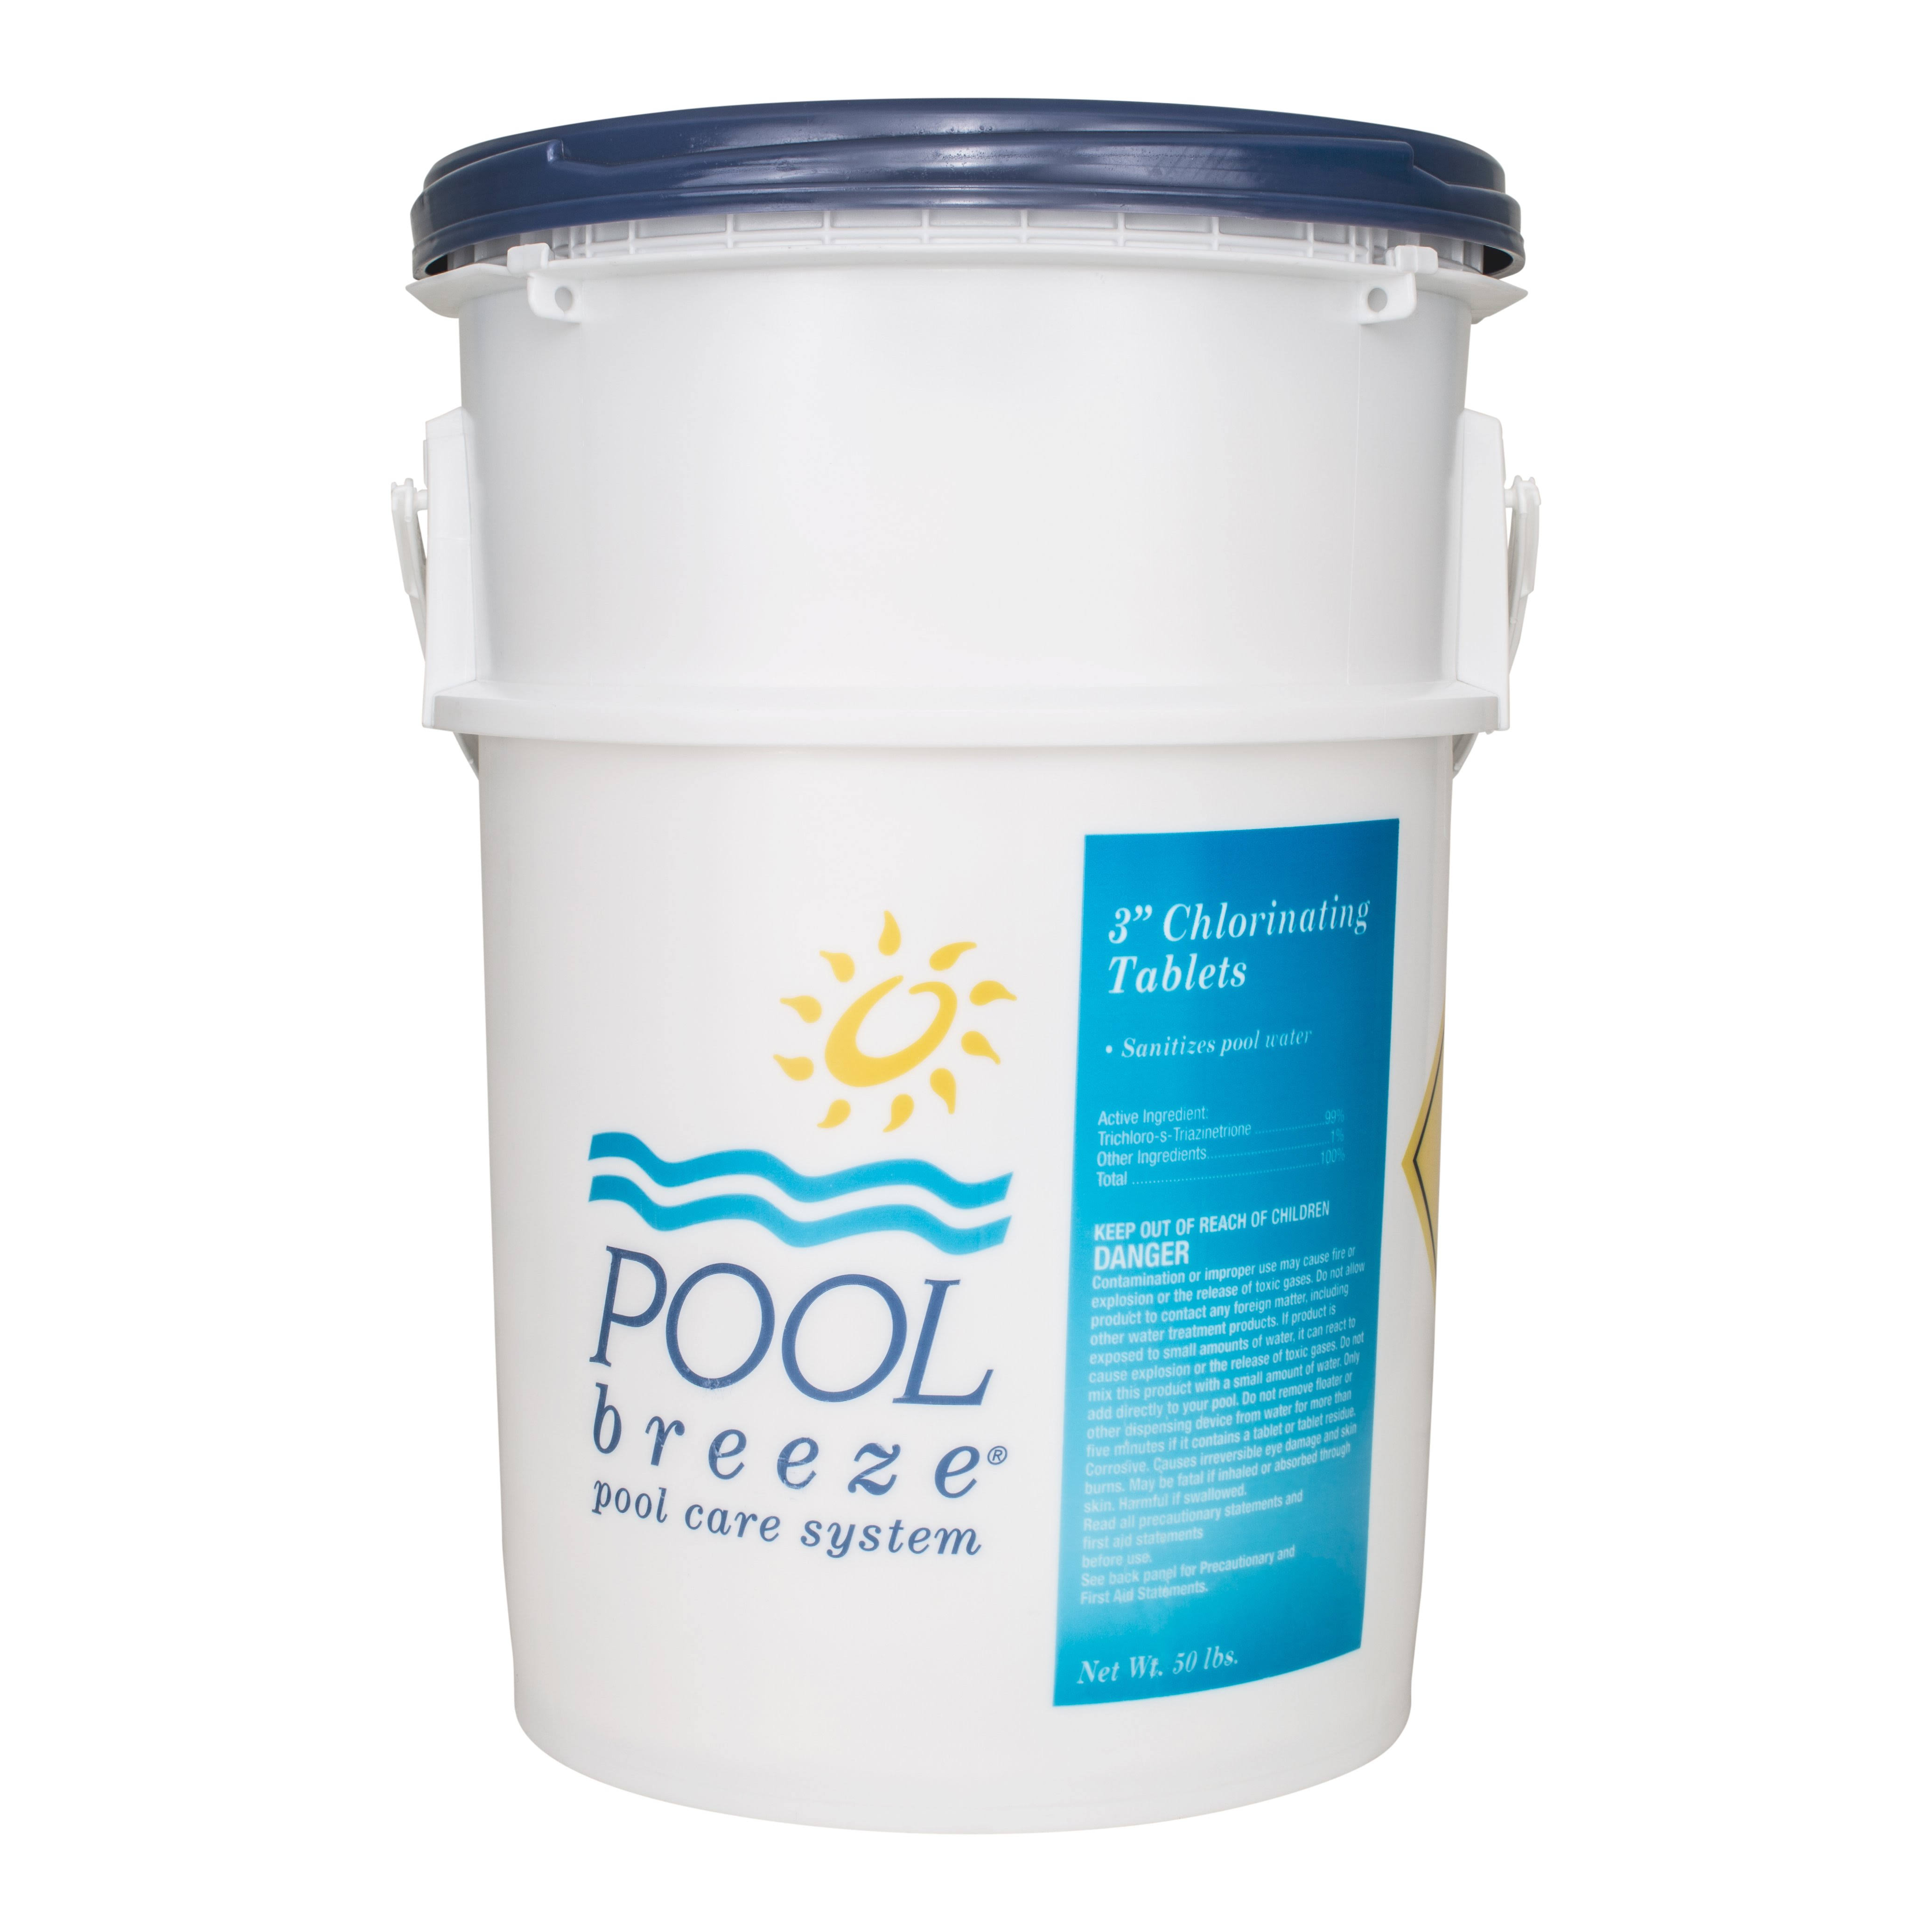 Pool Breeze 3 inch Chlorinating Tablets (50 lbs) 88413